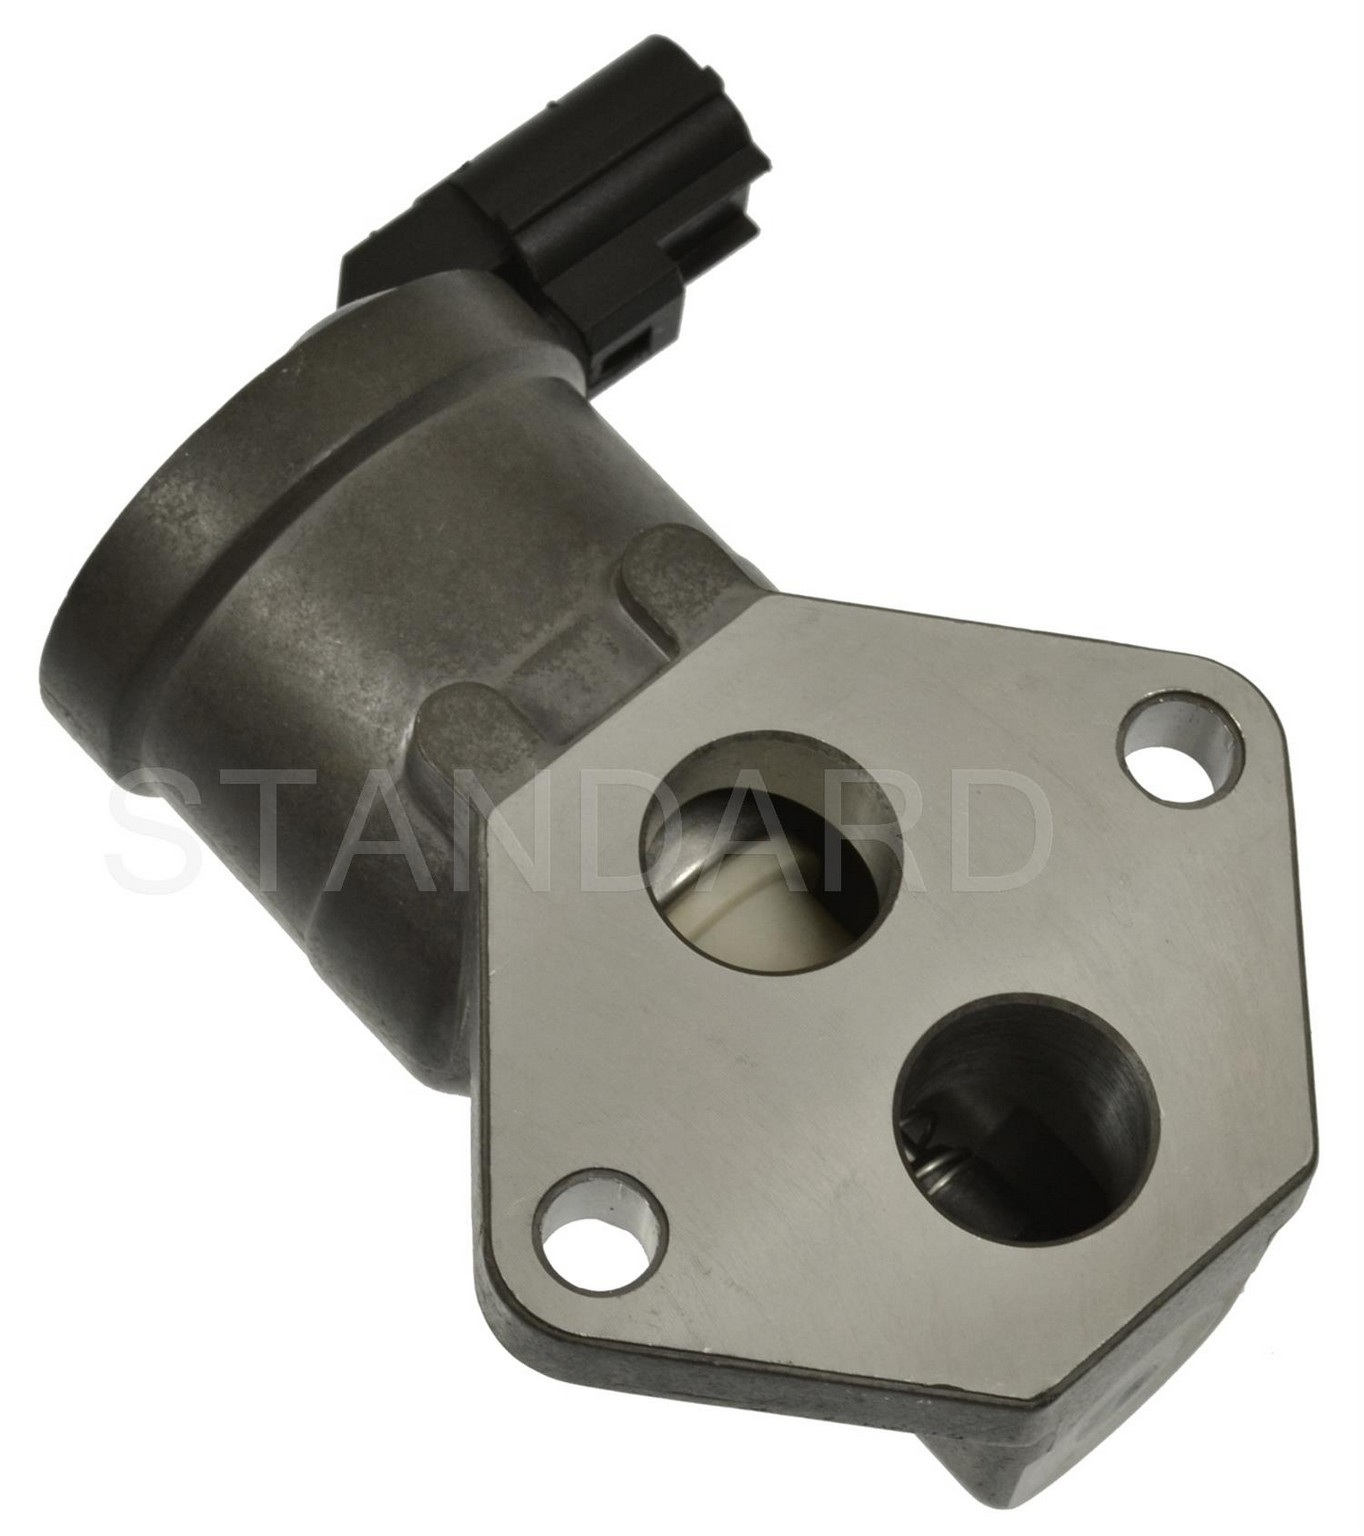 Standard Motor Products AC246 Idle Air Control Valve